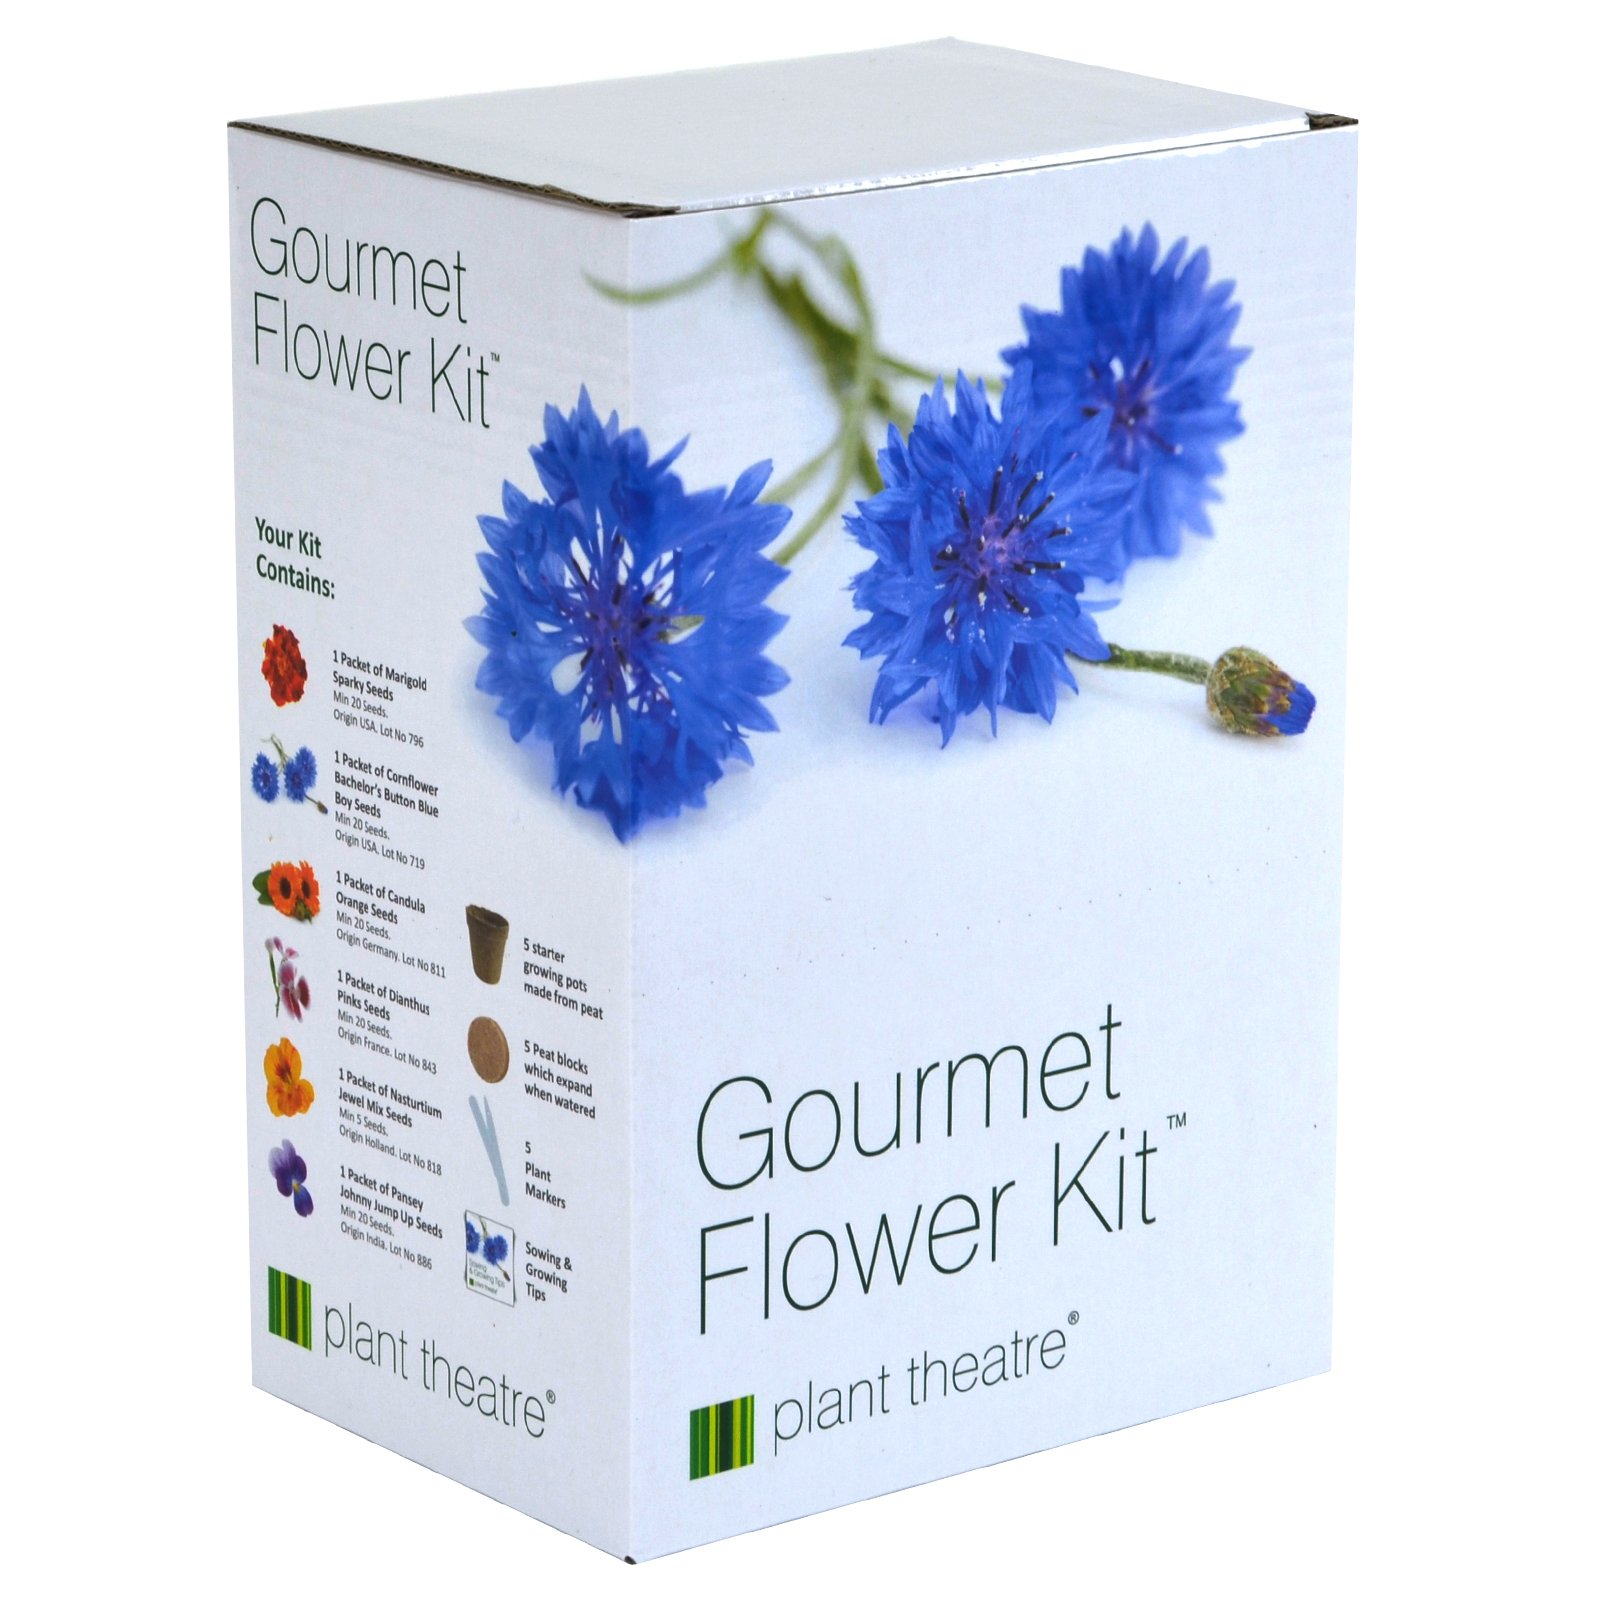 Plant Theatre Gourmet Flower Seed Kit Gift Box - 6 Edible Flower Varieties to Grow, Includes BATCHELORS Button Blue BOY, Calendula, Dianthus, Marigold Sparky, Nasturtium & Johnny Jump UP Pansy Seeds